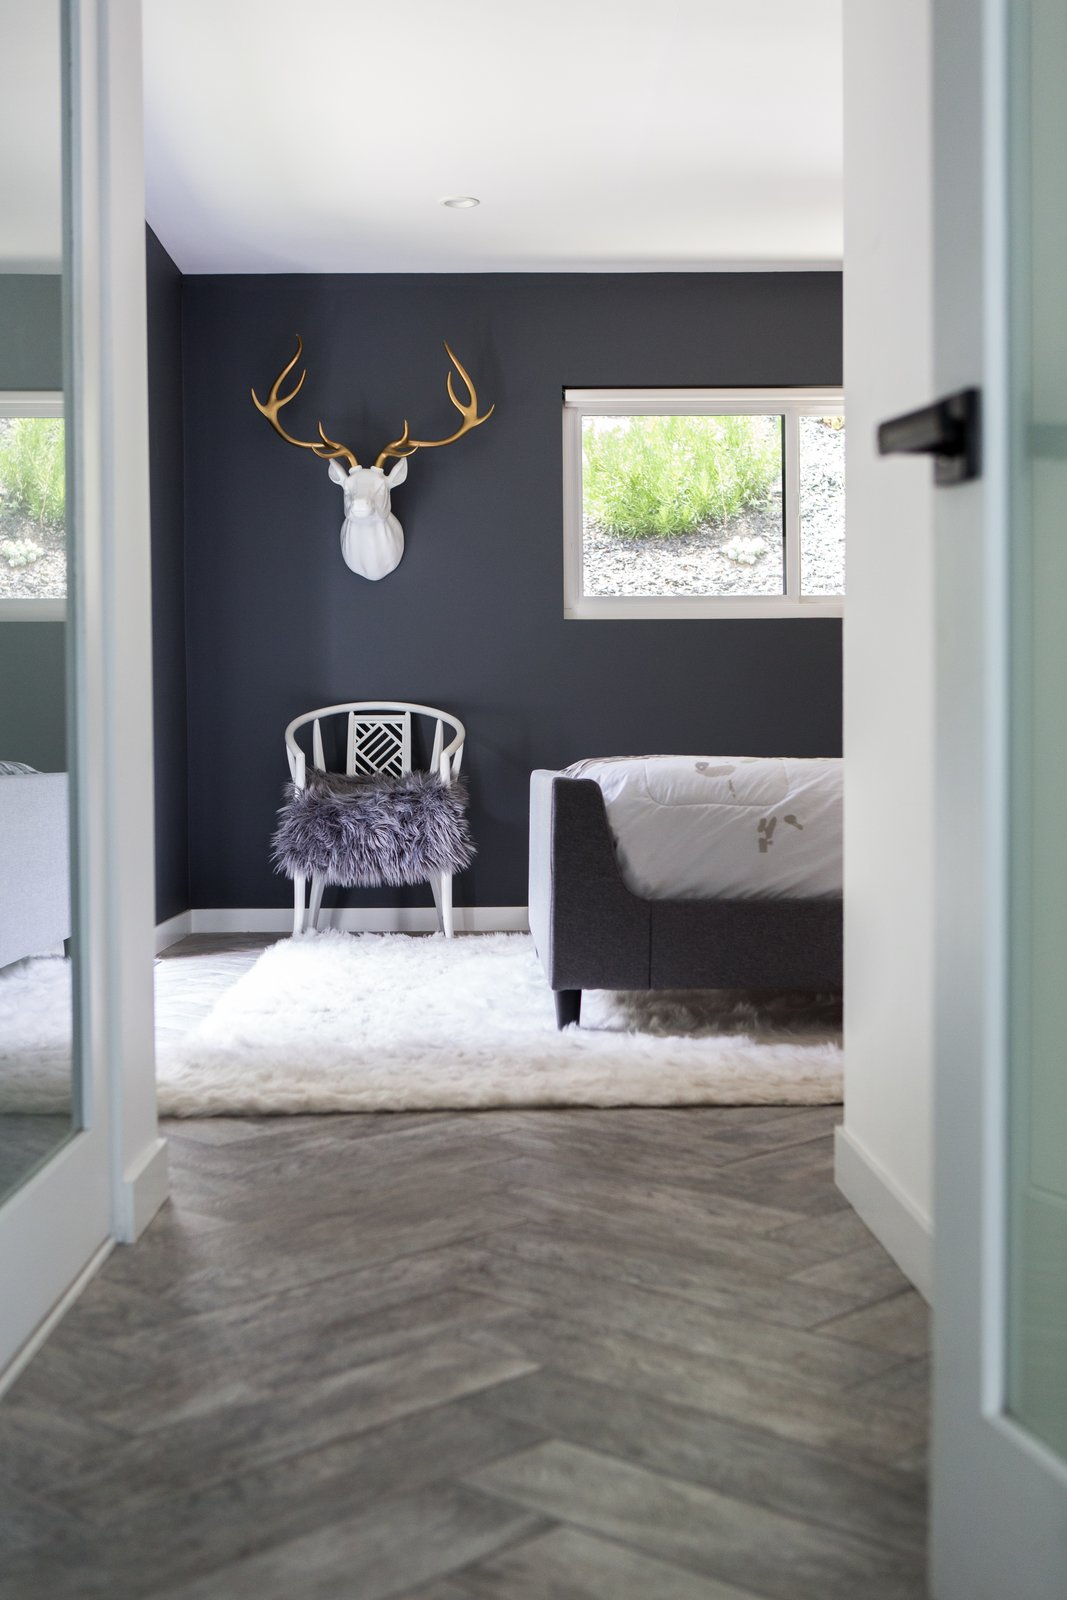 Bedroom, Chair, Bed, Recessed, and Porcelain Tile A gold-antlered ceramic deer head hangs above a flea market Chinoiserie chair in the master bedroom.  Best Bedroom Bed Porcelain Tile Photos from Diablo Ranch